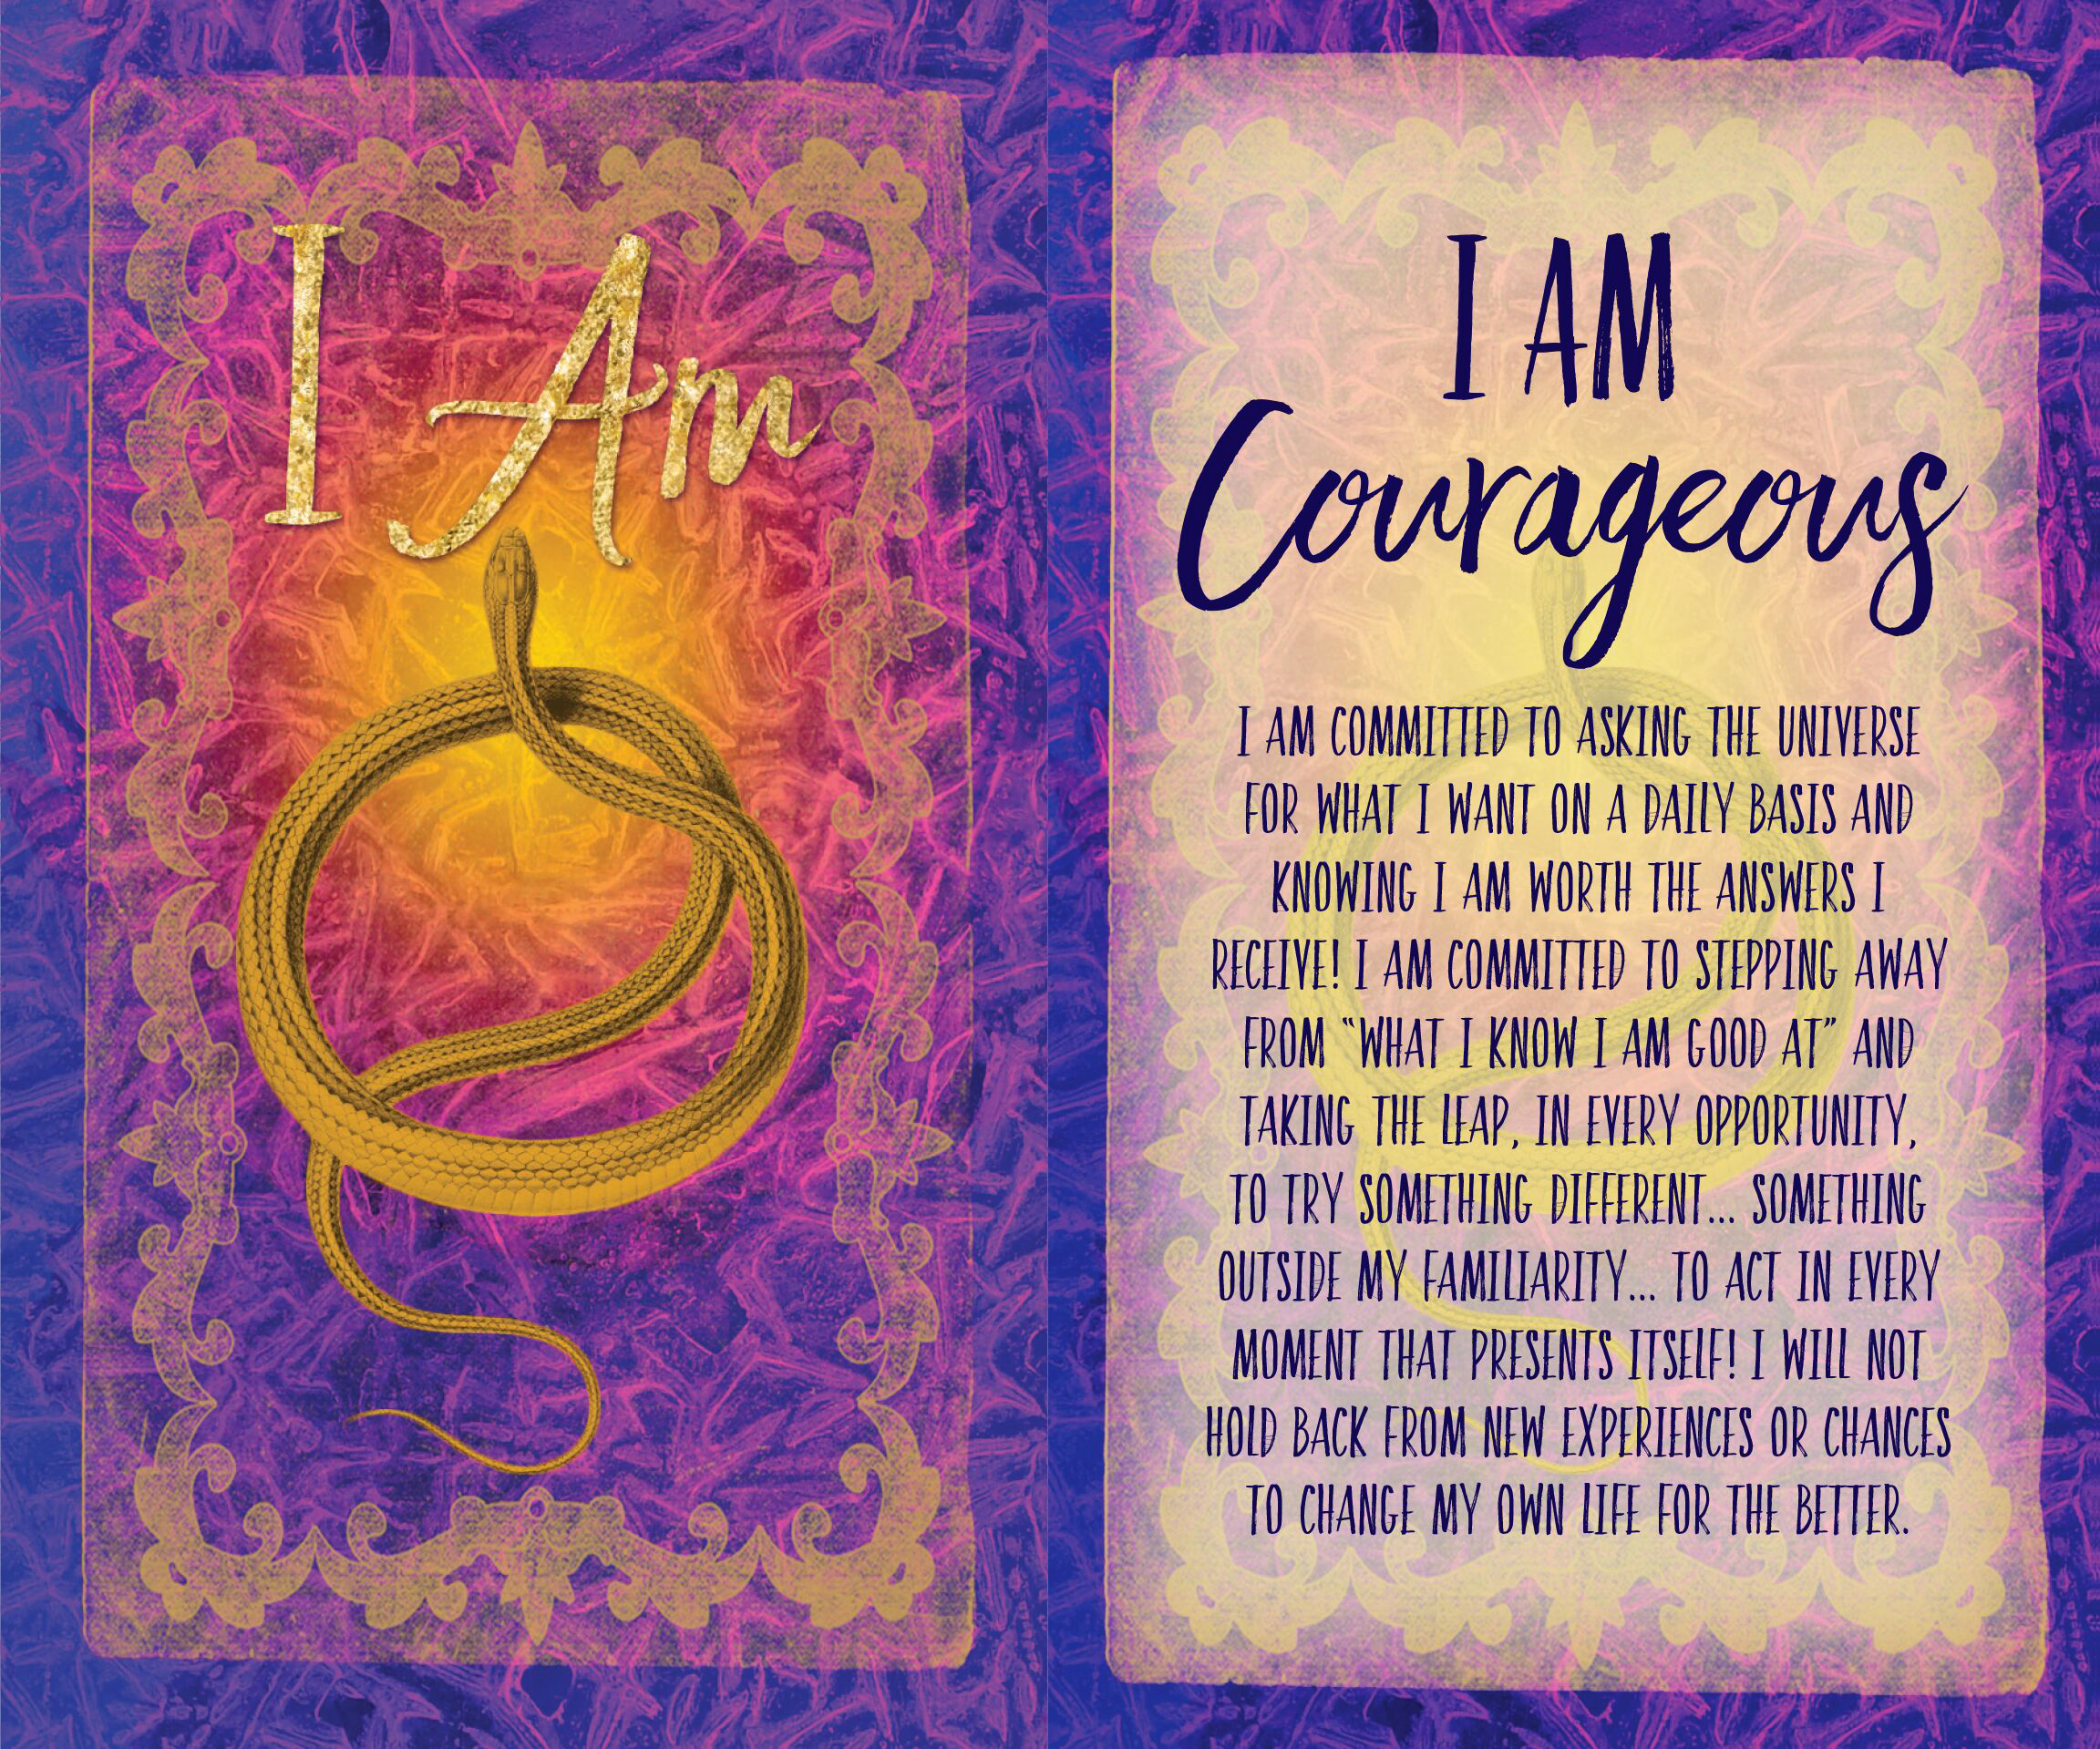 I Am Courageous. I am committed to asking The Universe for what I want on a daily basis and knowing I am worth the answers to receive it. I'm committed to stepping away from the what I know I am good at; and taking a leap in every opportunity to try something different... Something outside my familiarity... to act in every moment that presents itself. I will not hold back from my experiences, or chances to change my life for the better.